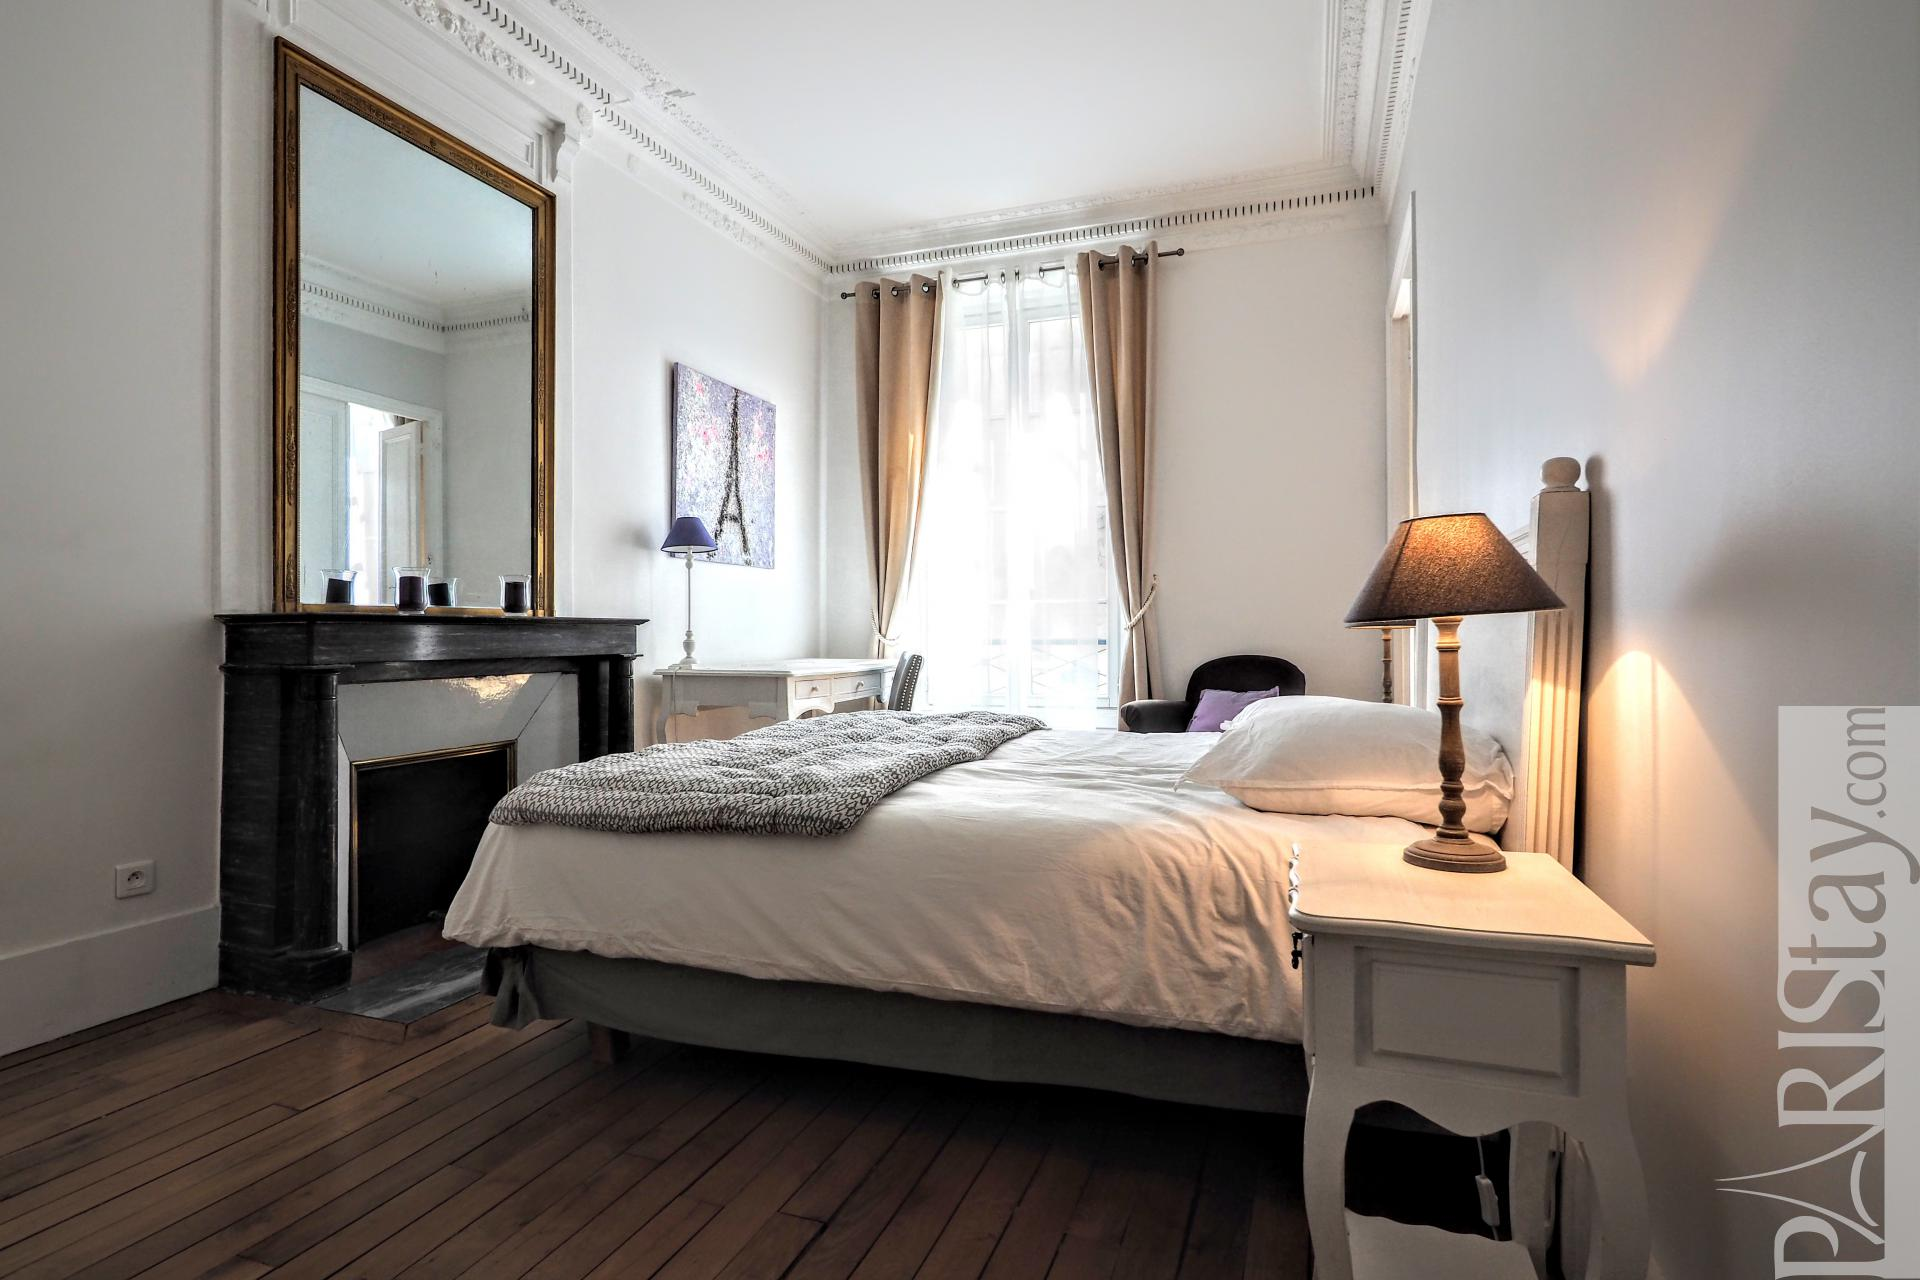 Chambre a coucher germain lariviere for Germain lariviere meuble